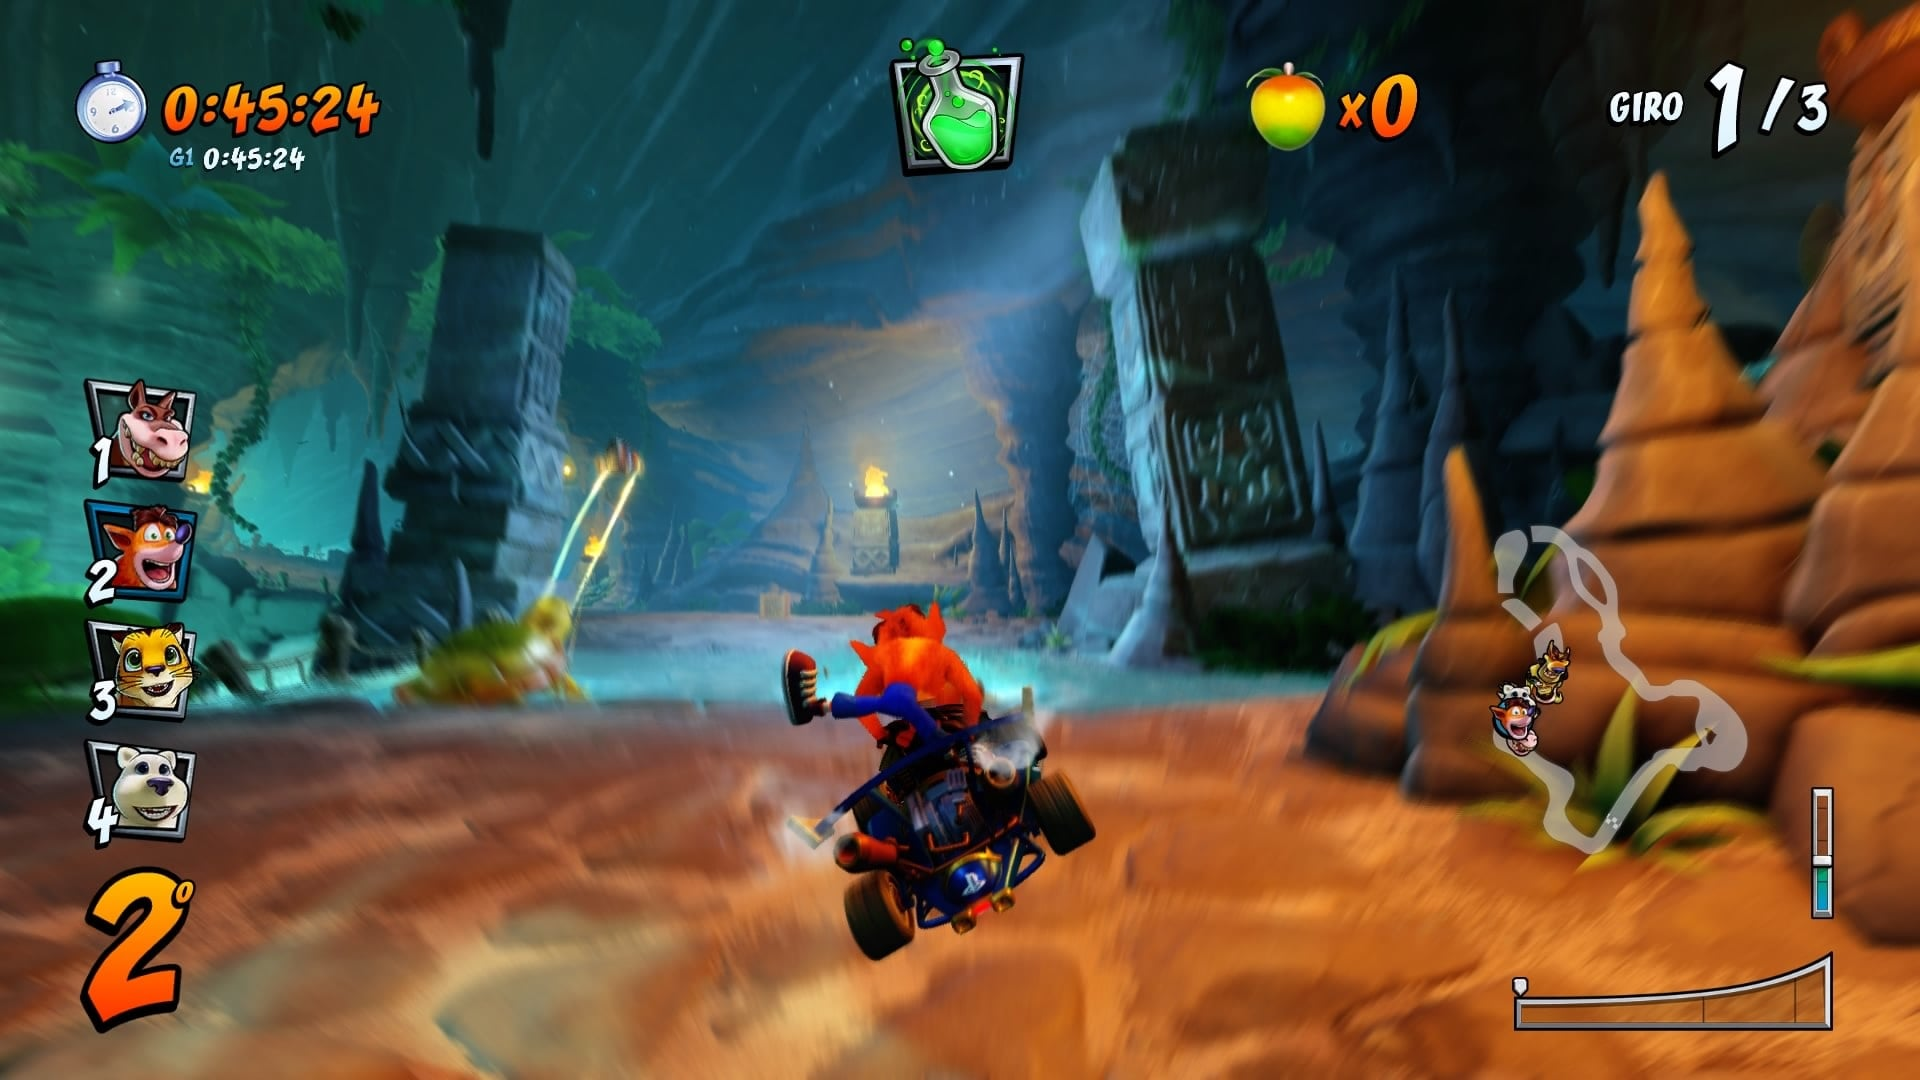 Crash Team Racing Nitro Fueled: 20 Anni Dopo - Recensione 5 - Hynerd.it